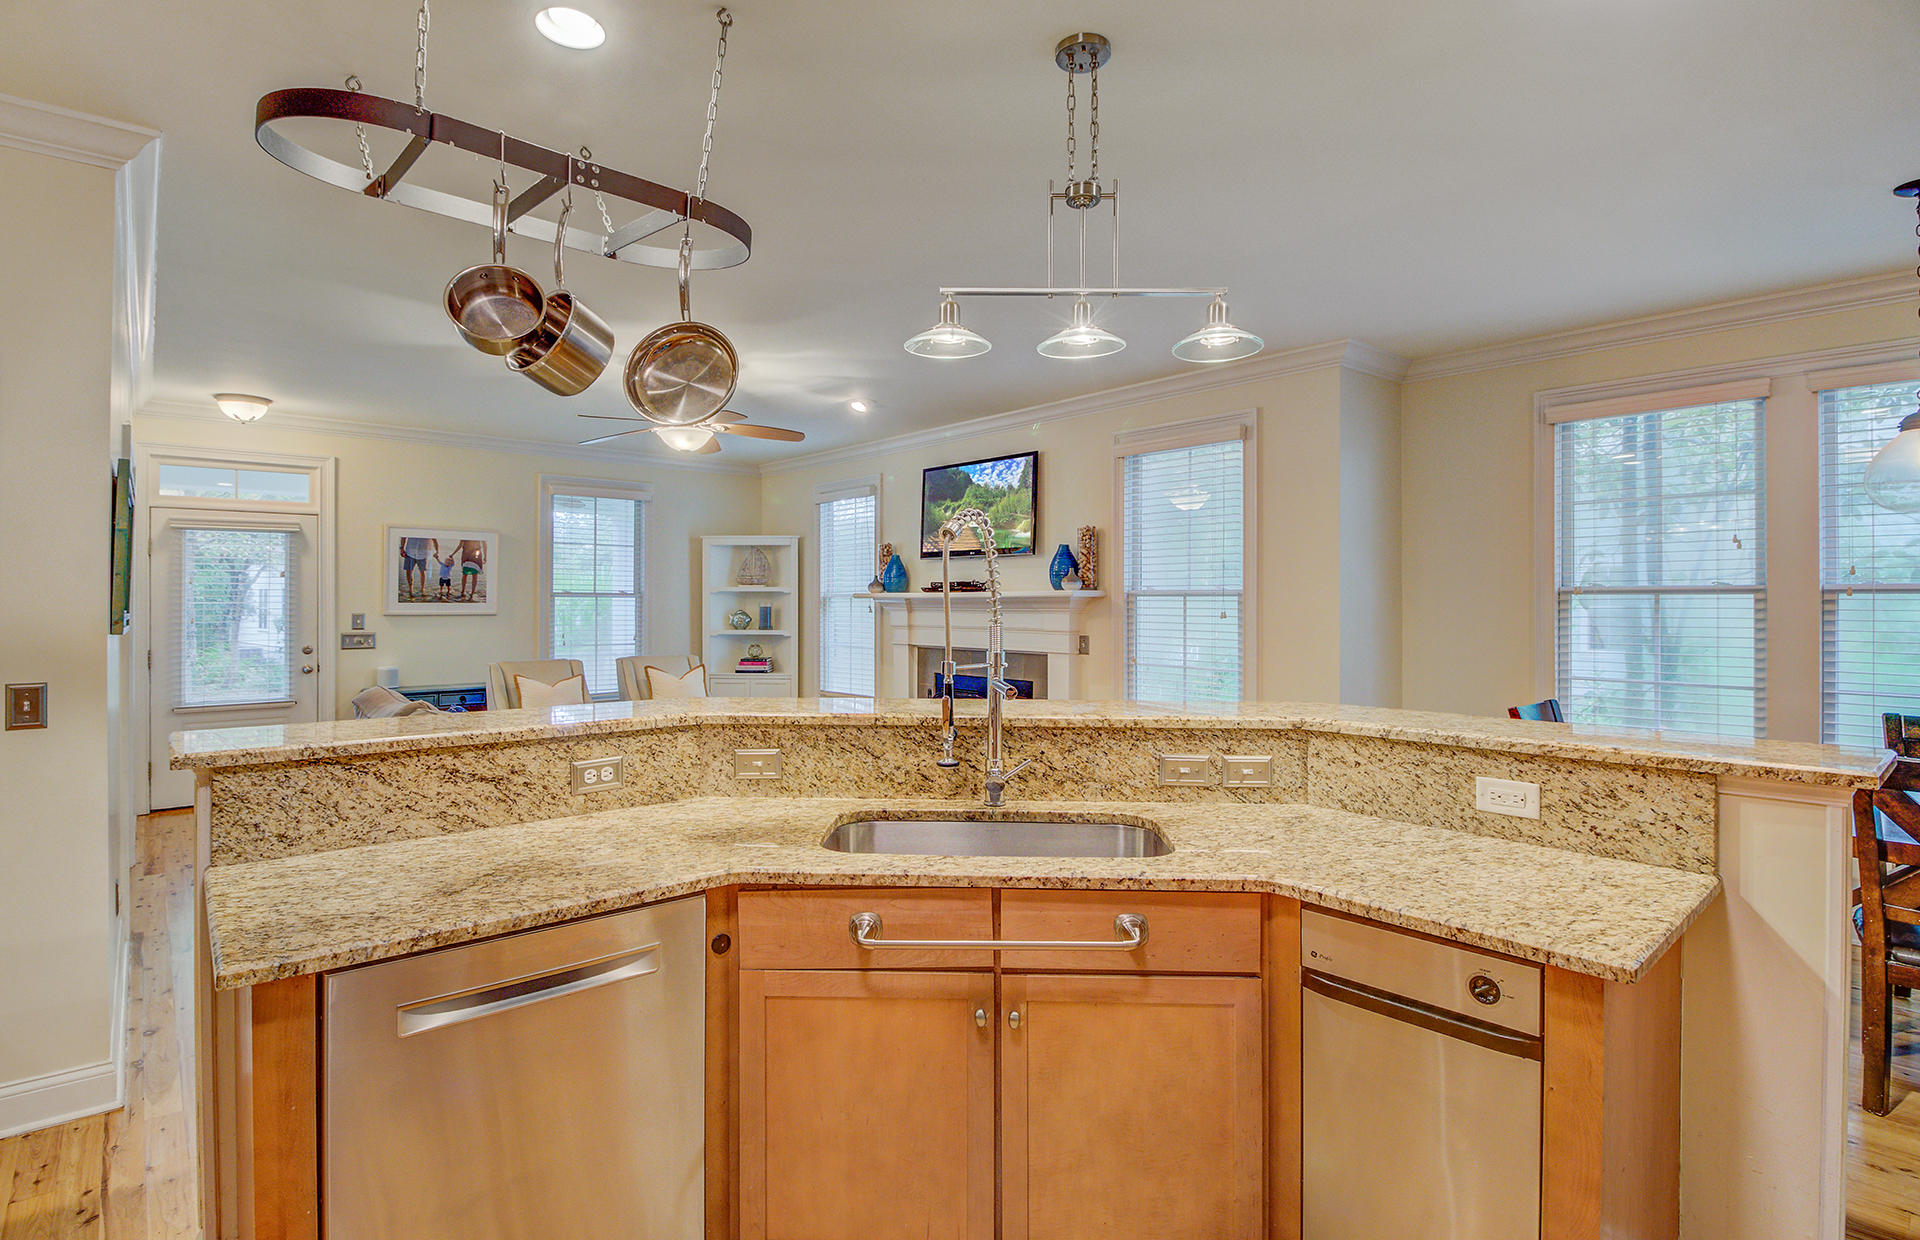 The Villages In St Johns Woods Homes For Sale - 5032 Coral Reef, Johns Island, SC - 26